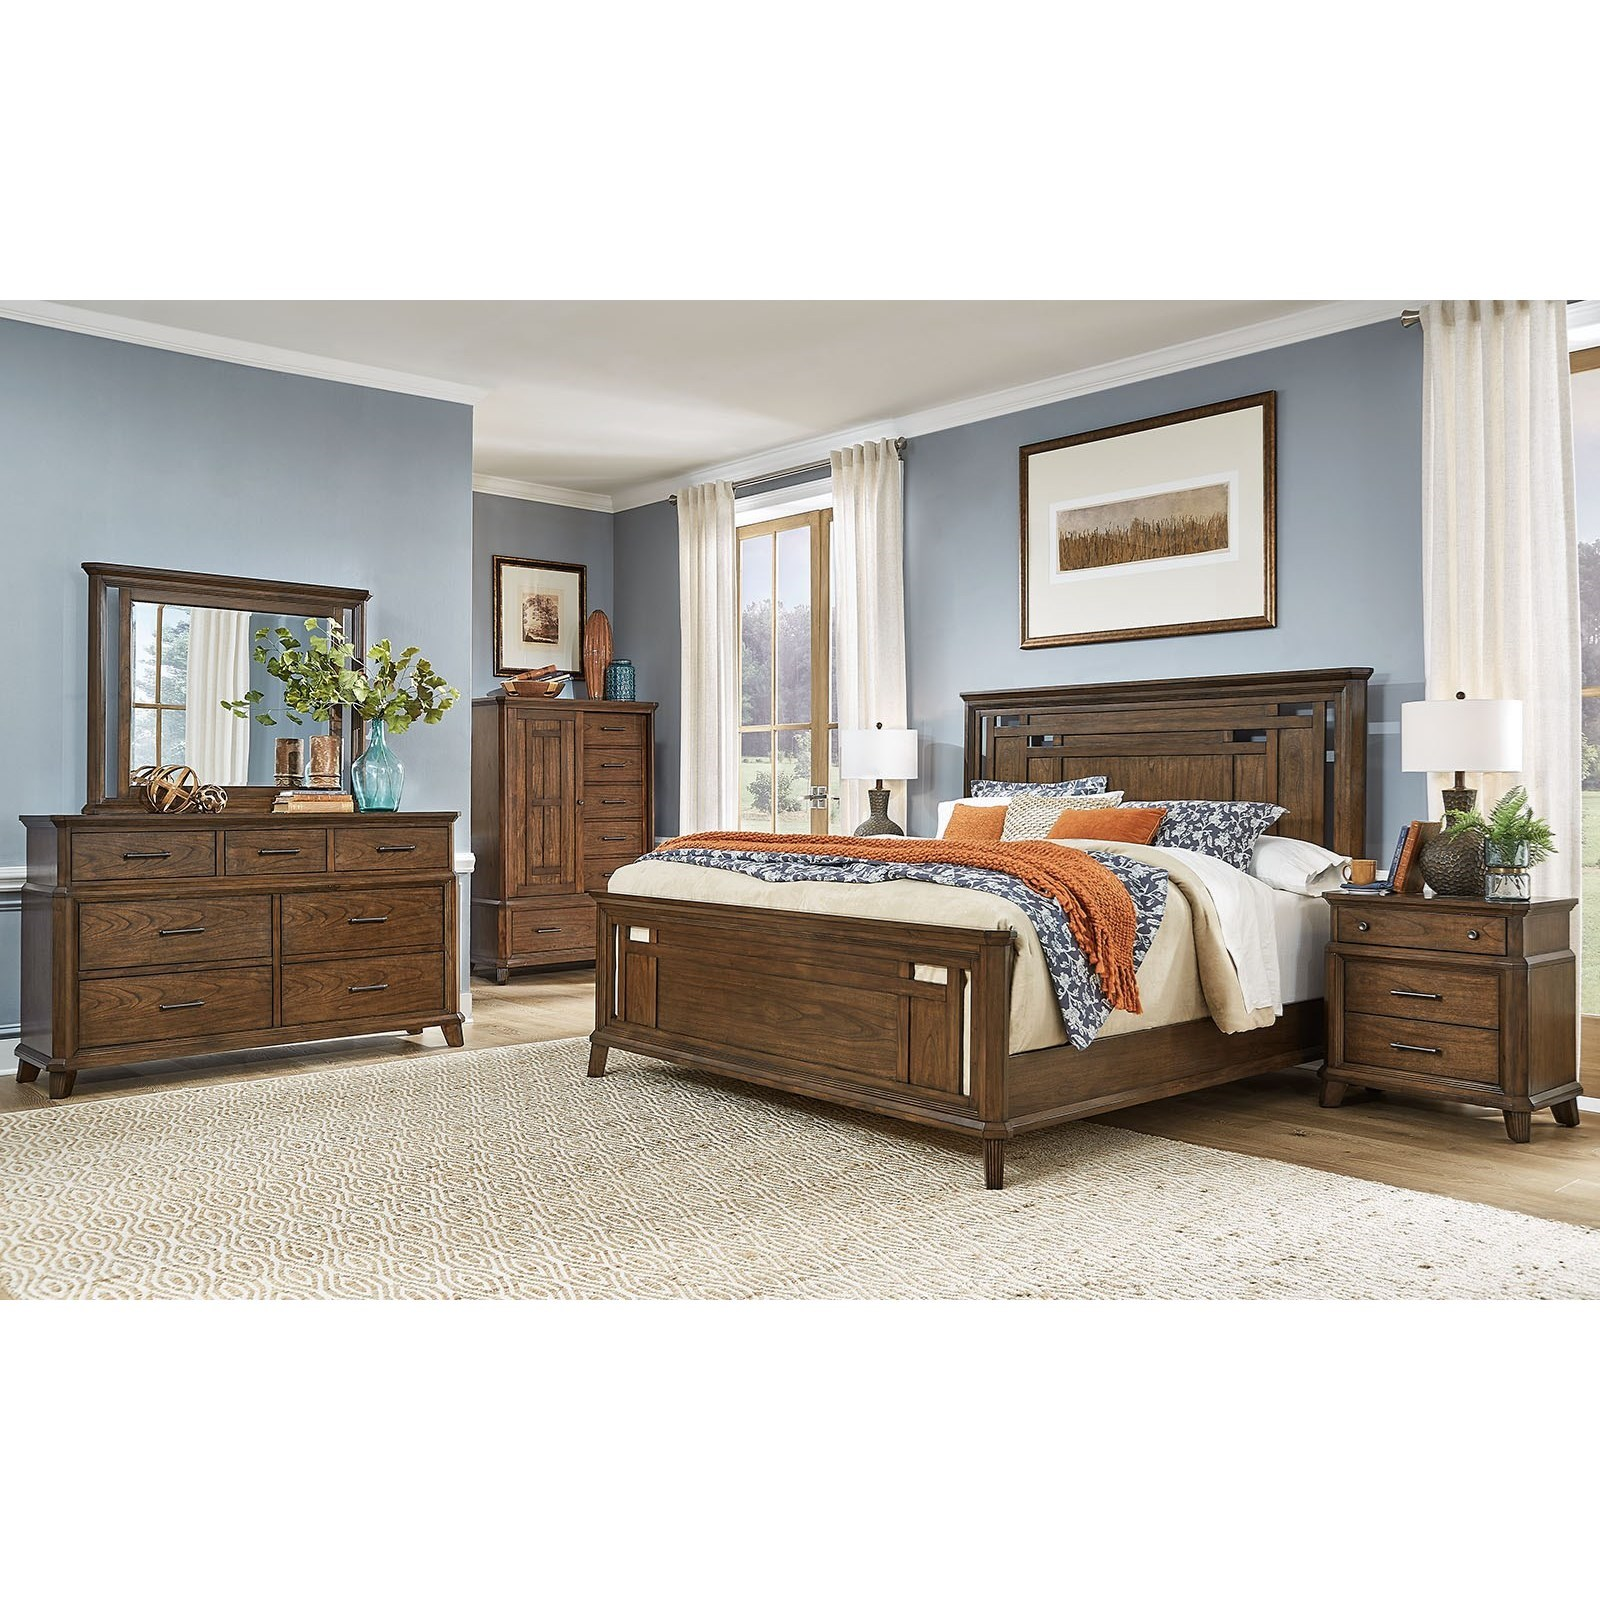 Filson Creek King Bedroom Group  by AAmerica at Gill Brothers Furniture